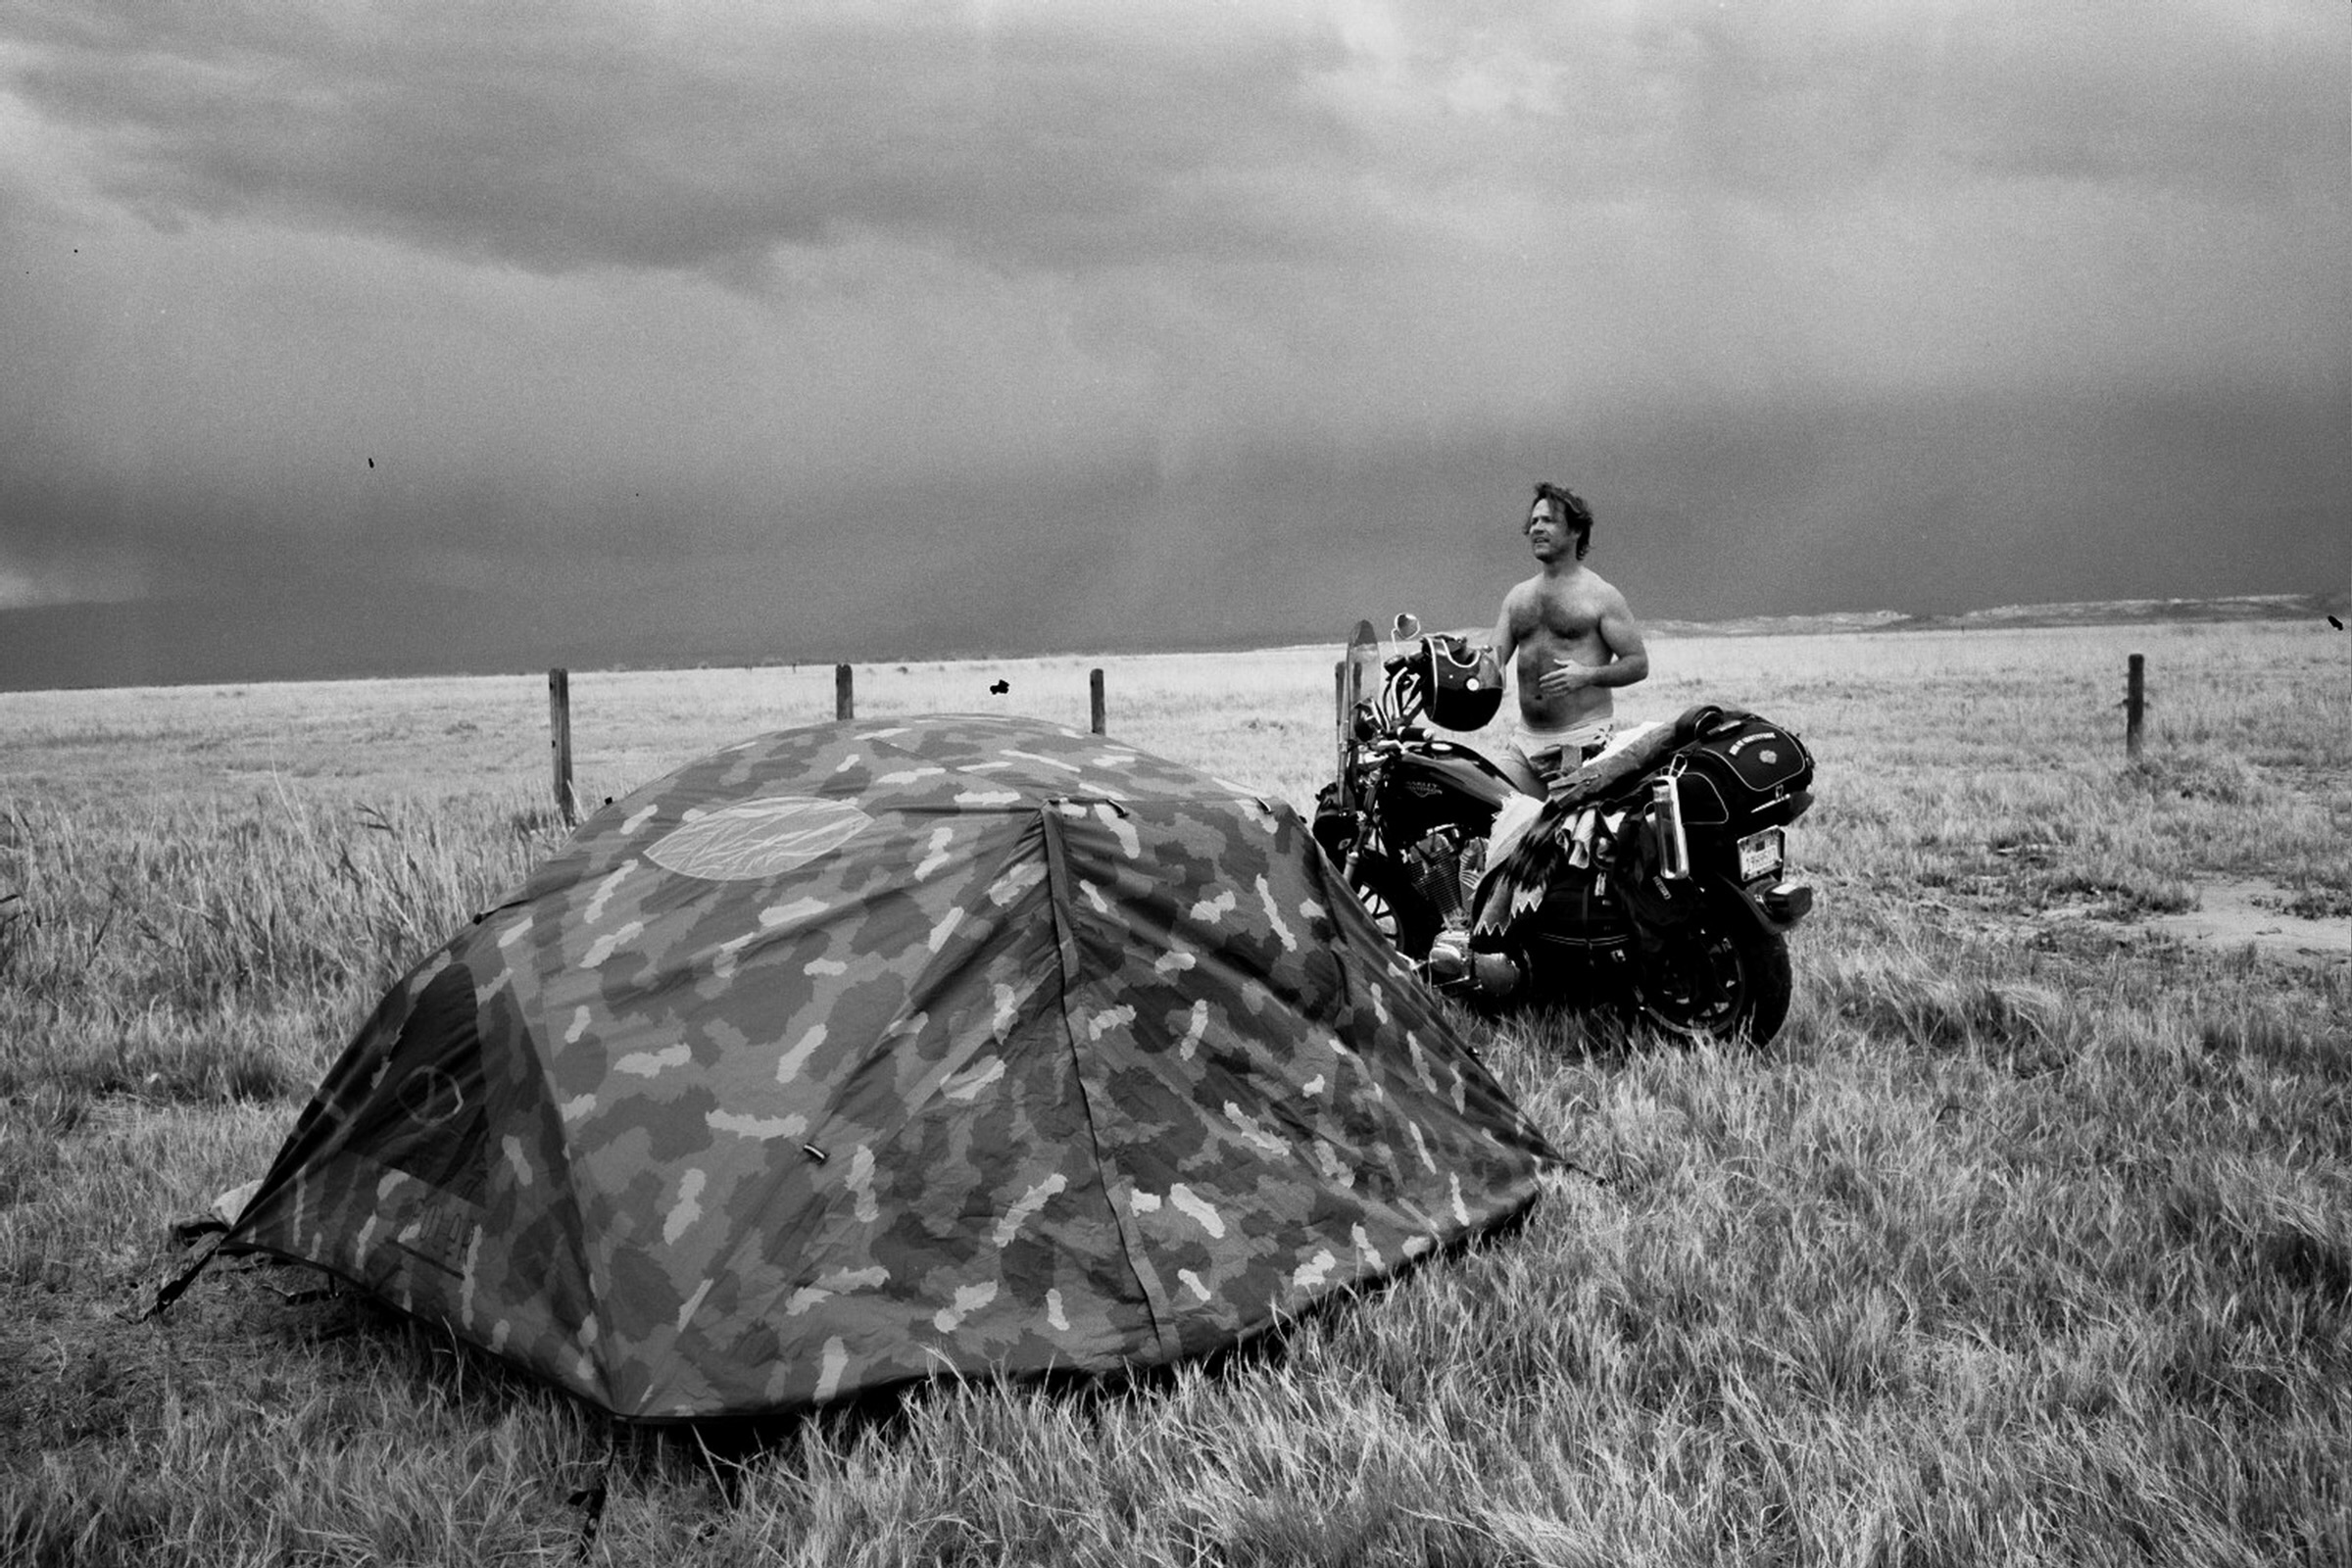 Marty Dinglewall taking cover from a storm in Meadow, Utah.